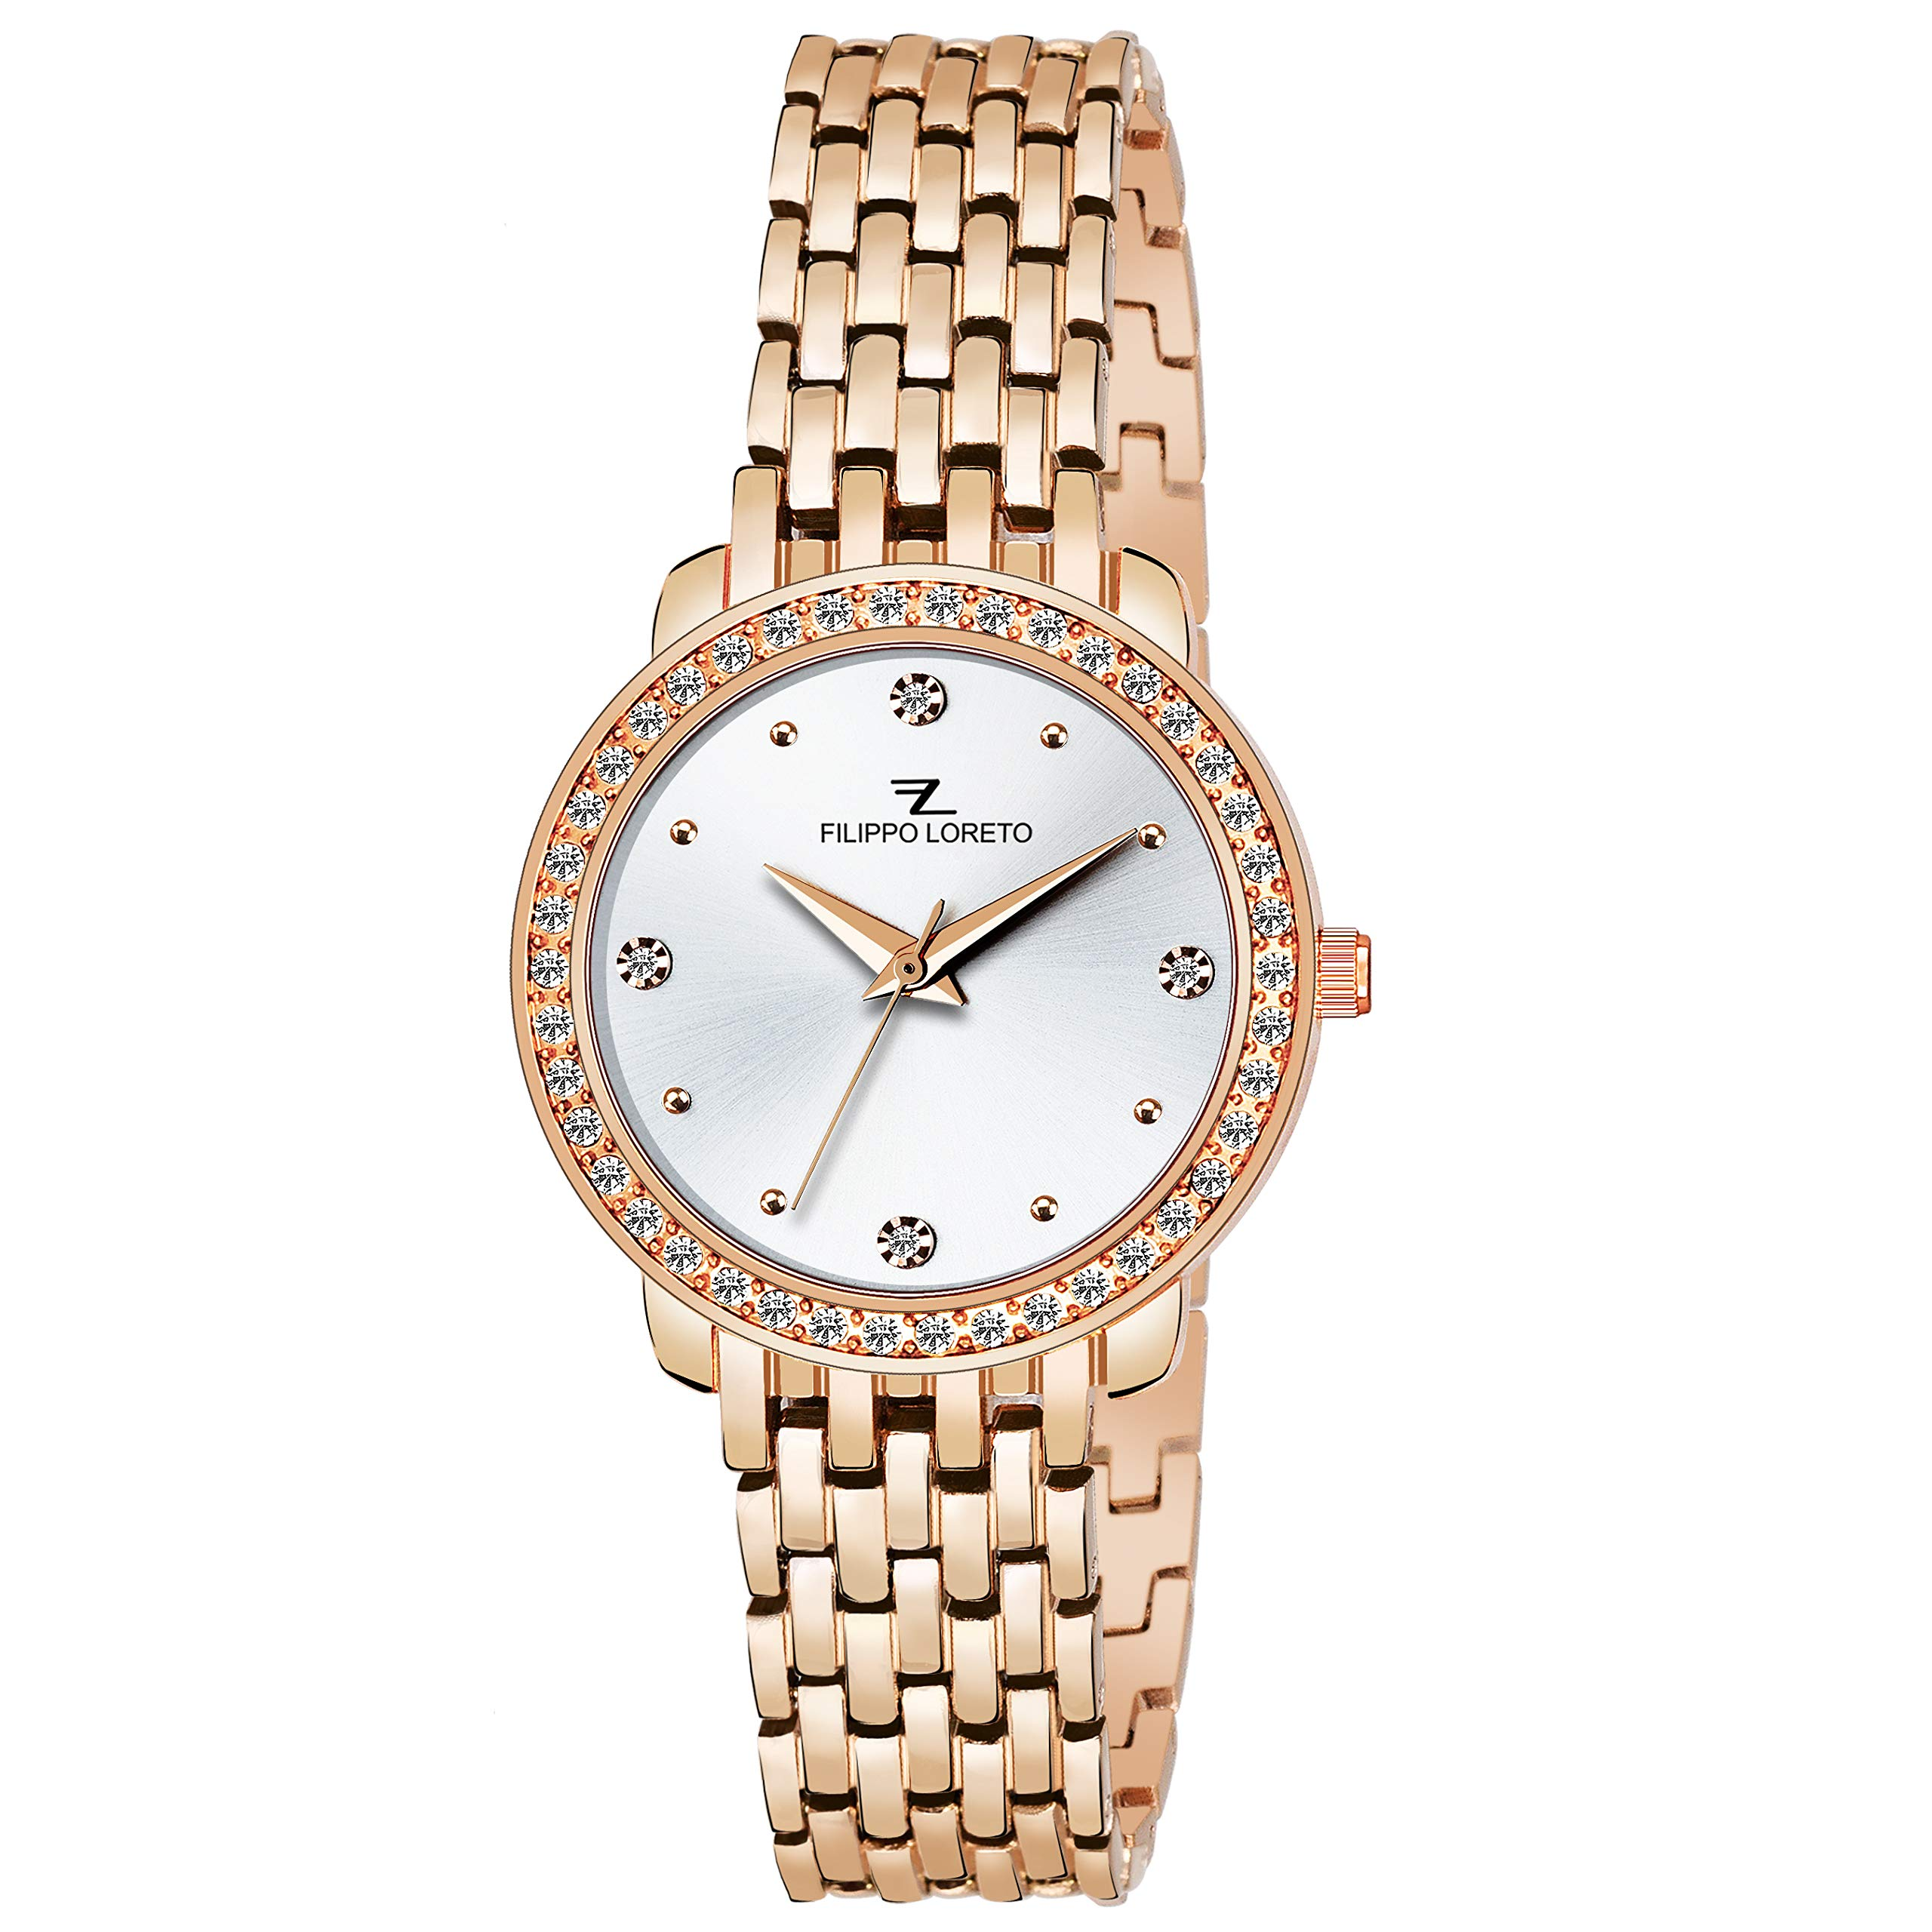 Filippo Loreto Analogue Women's Watch (B07RD7M6GG) Amazon Price History, Amazon Price Tracker